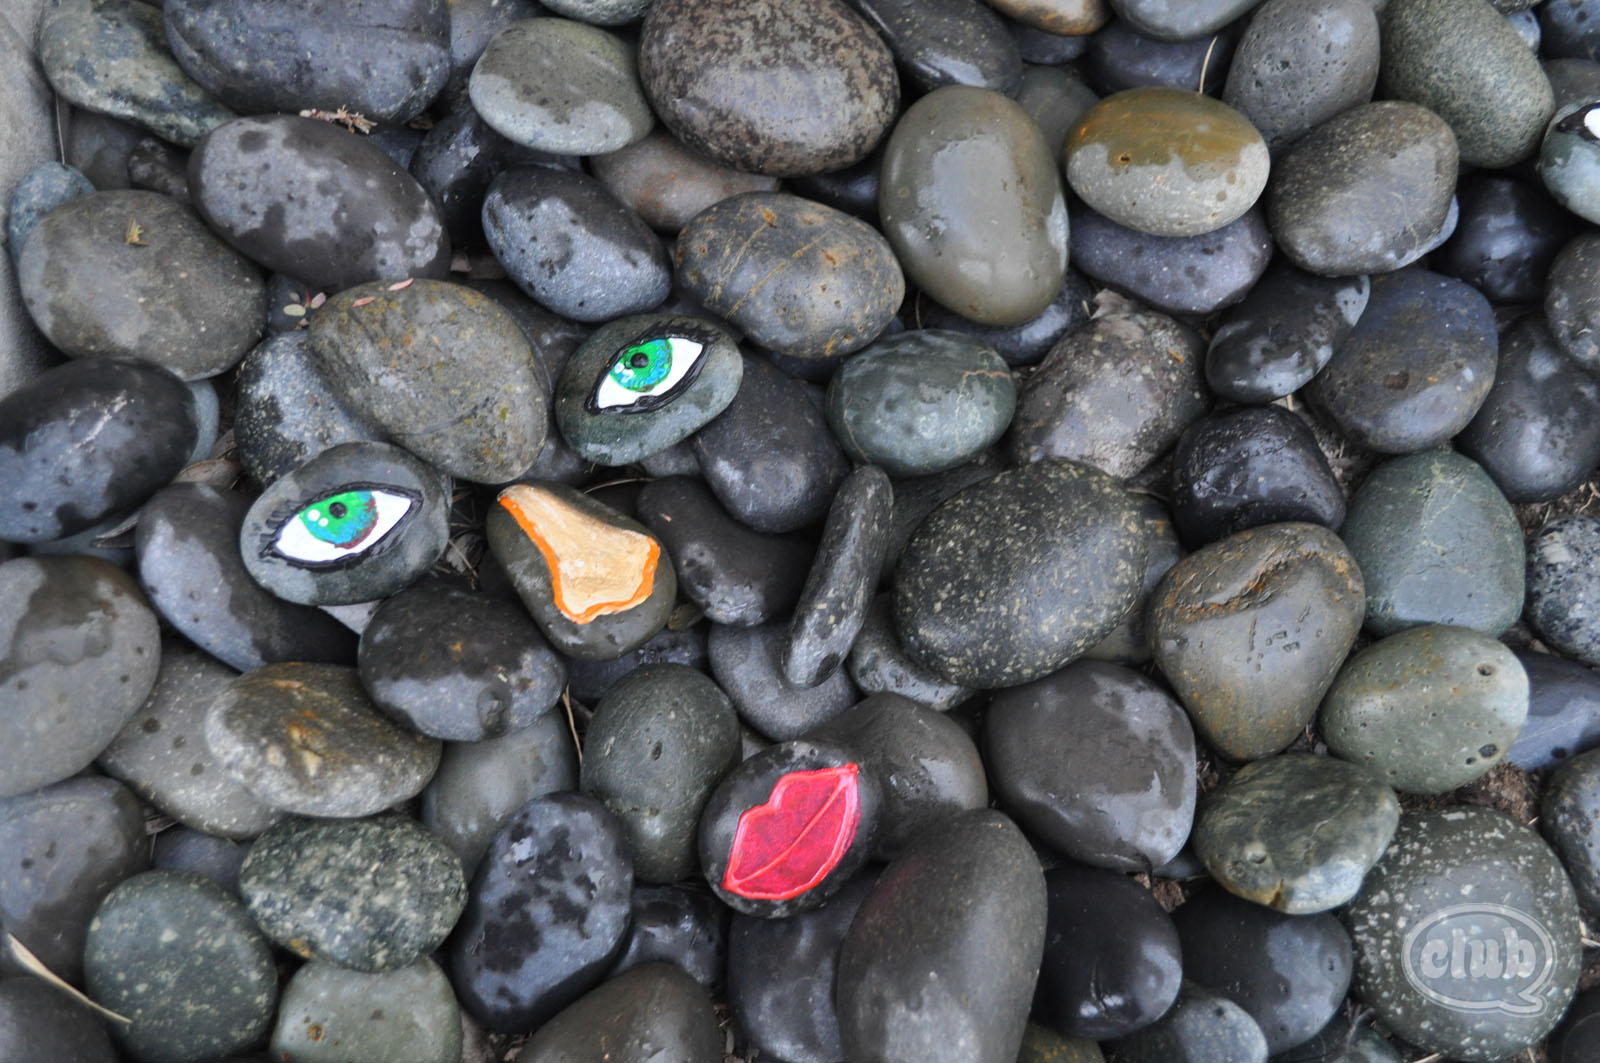 How A Dead Snail Inspired Crafting With Rocks